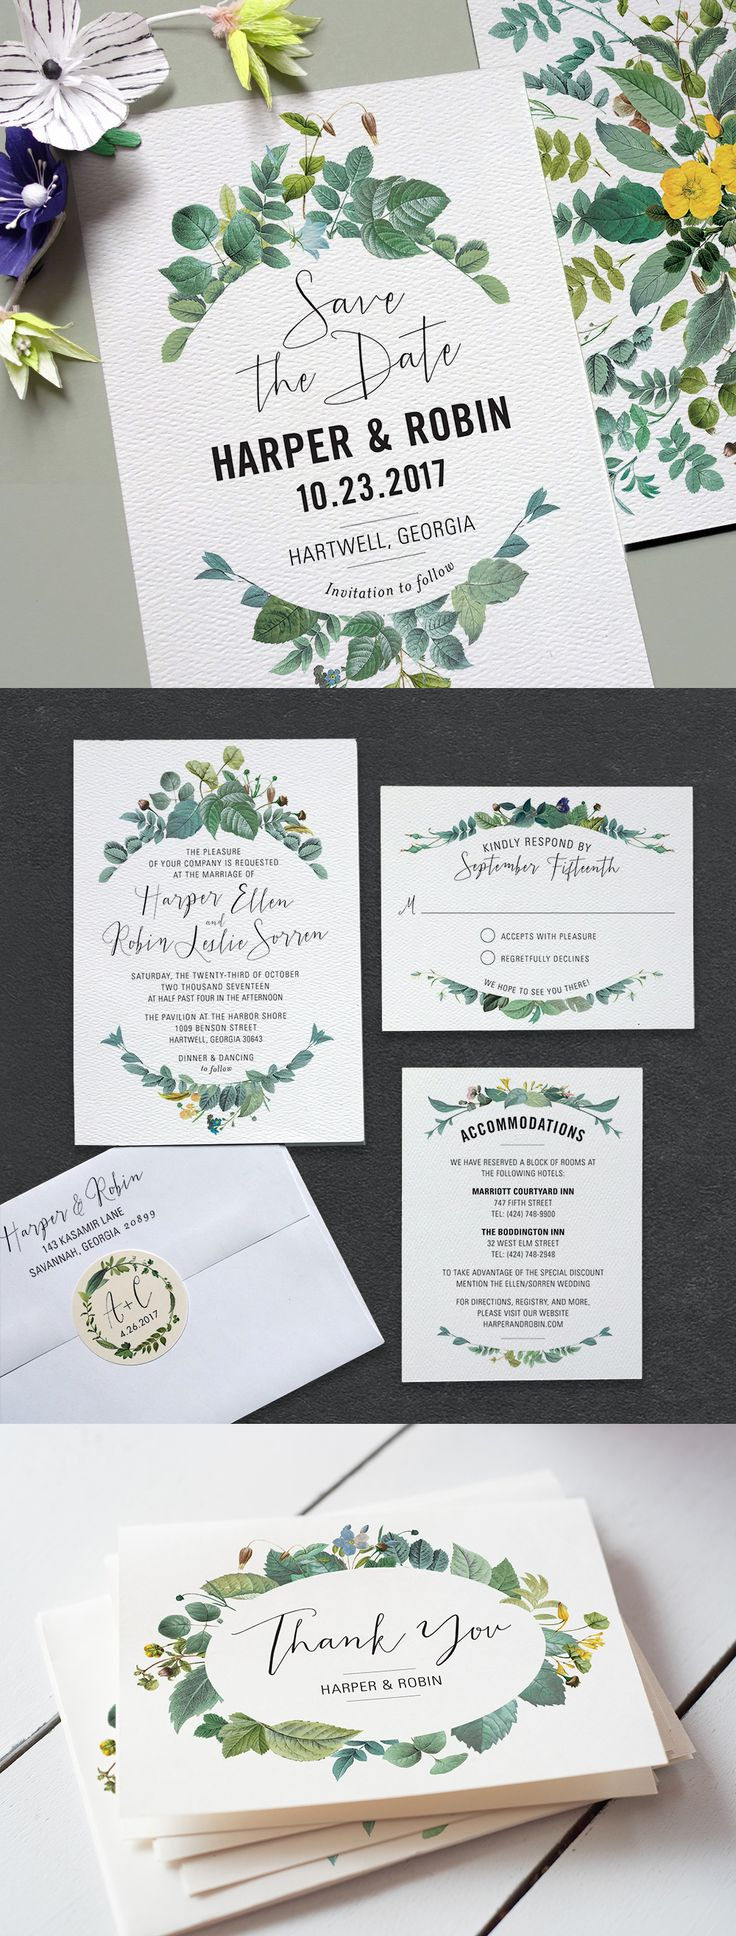 gotta love greenery wedding stationery from Printable Press